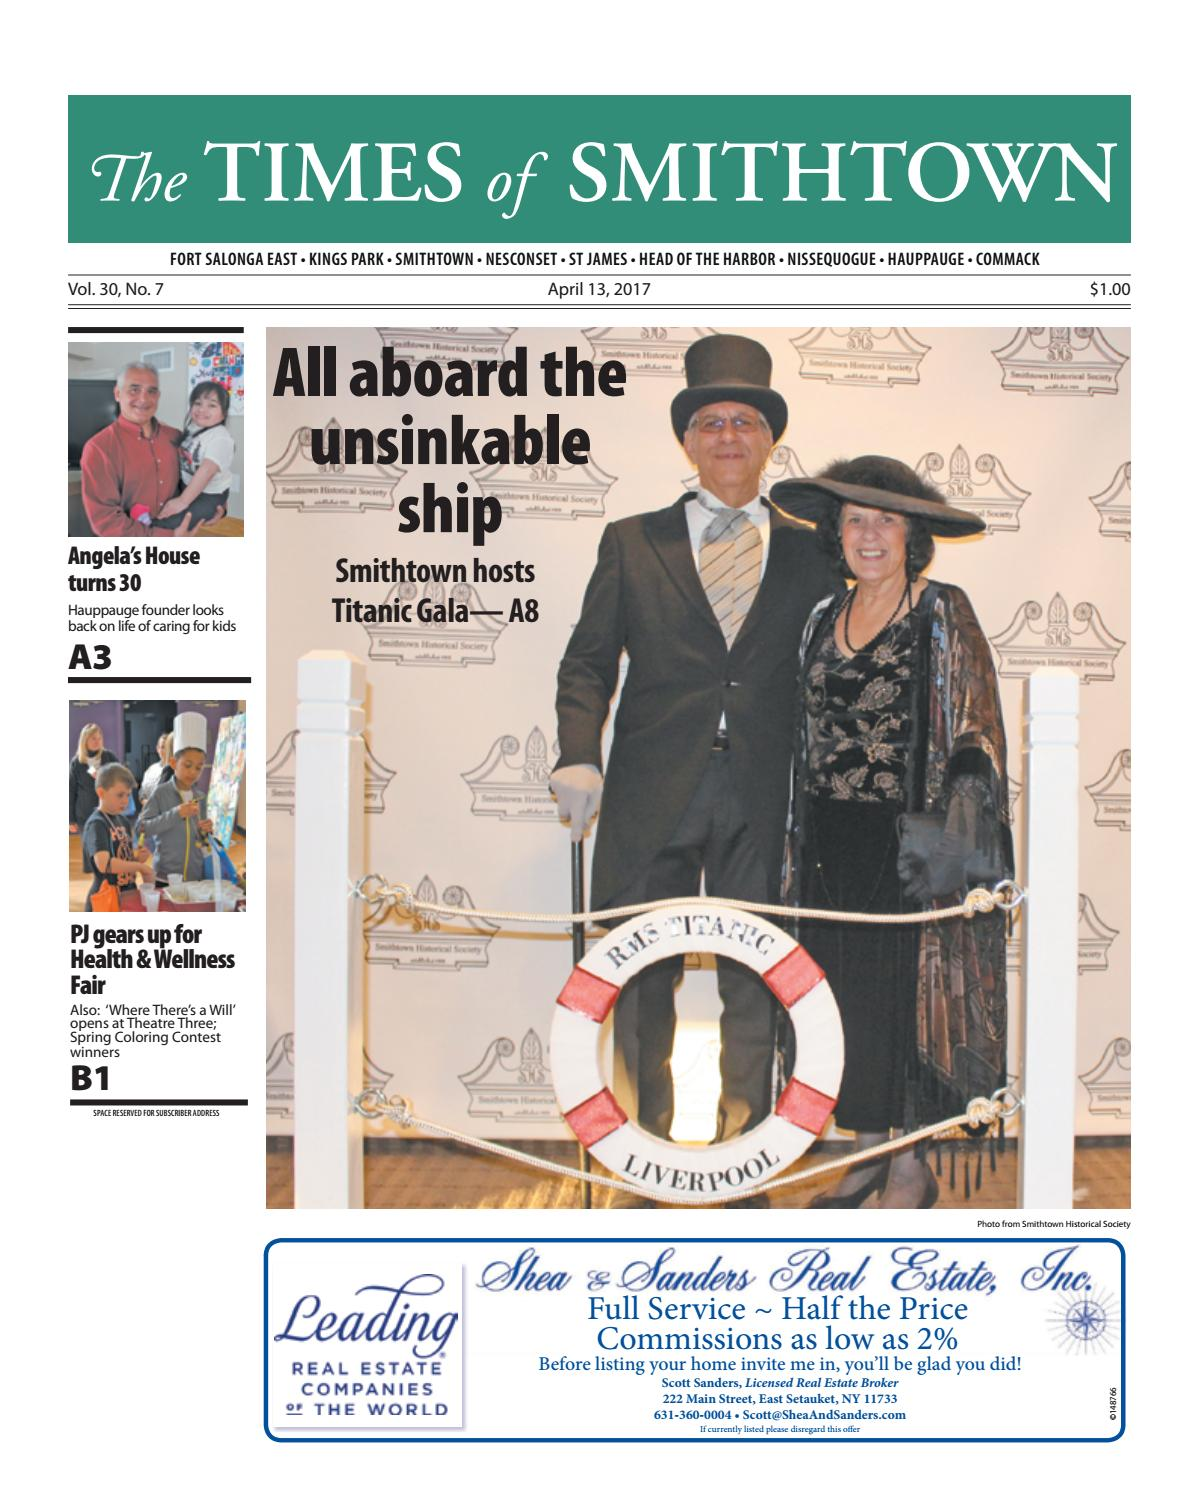 The times of smithtown april 13 2017 by tbr news media issuu negle